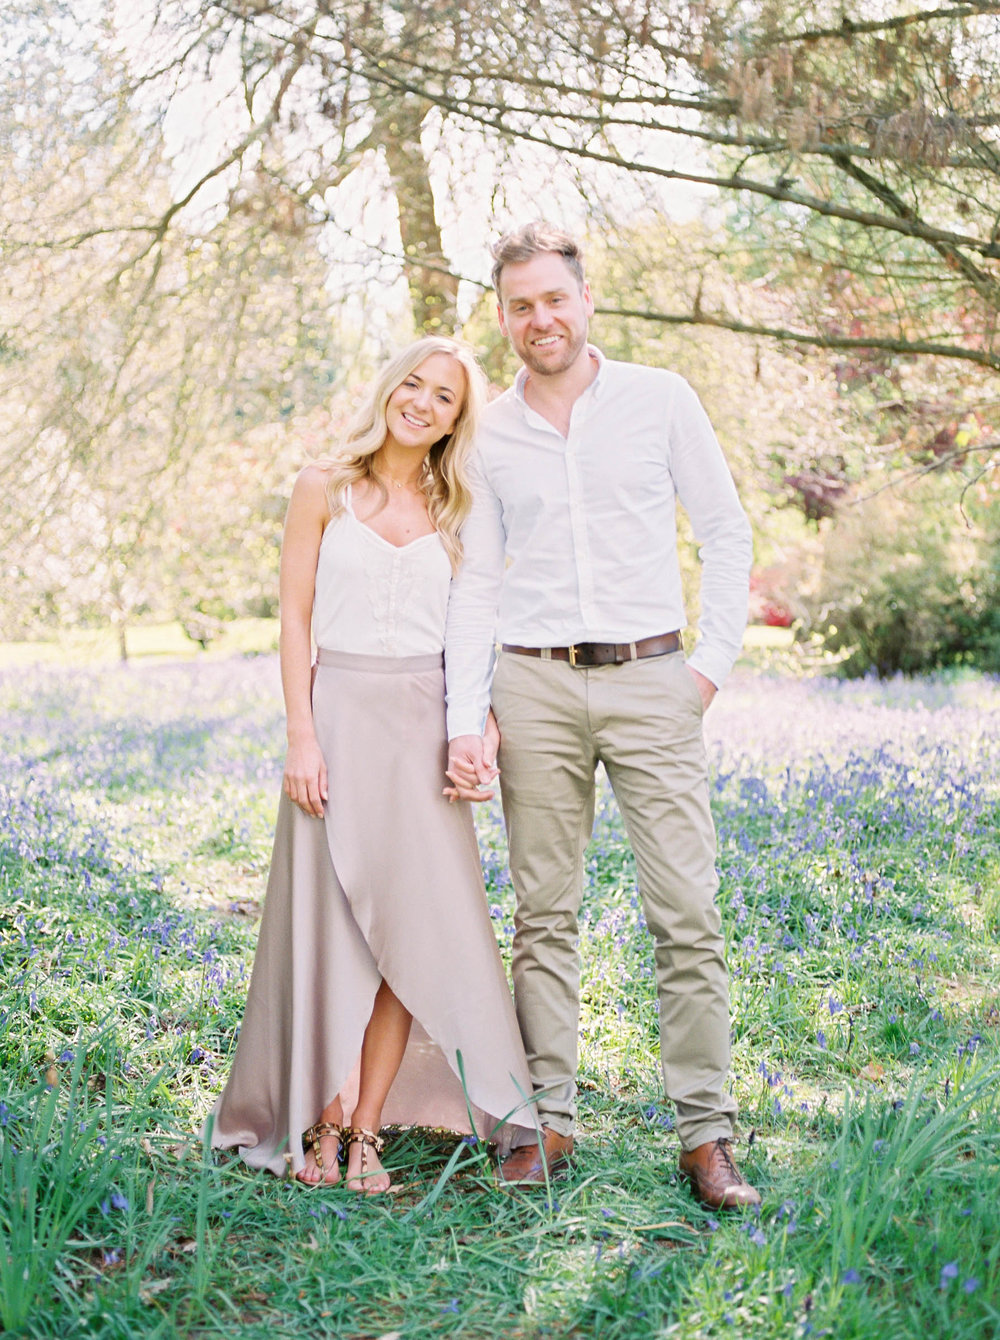 Amy O'Boyle Photography- Destination & UK Fine Art Film Wedding Photographer- Sheffield Park Garden National Trust Spring Engagement Shoot-18.jpg